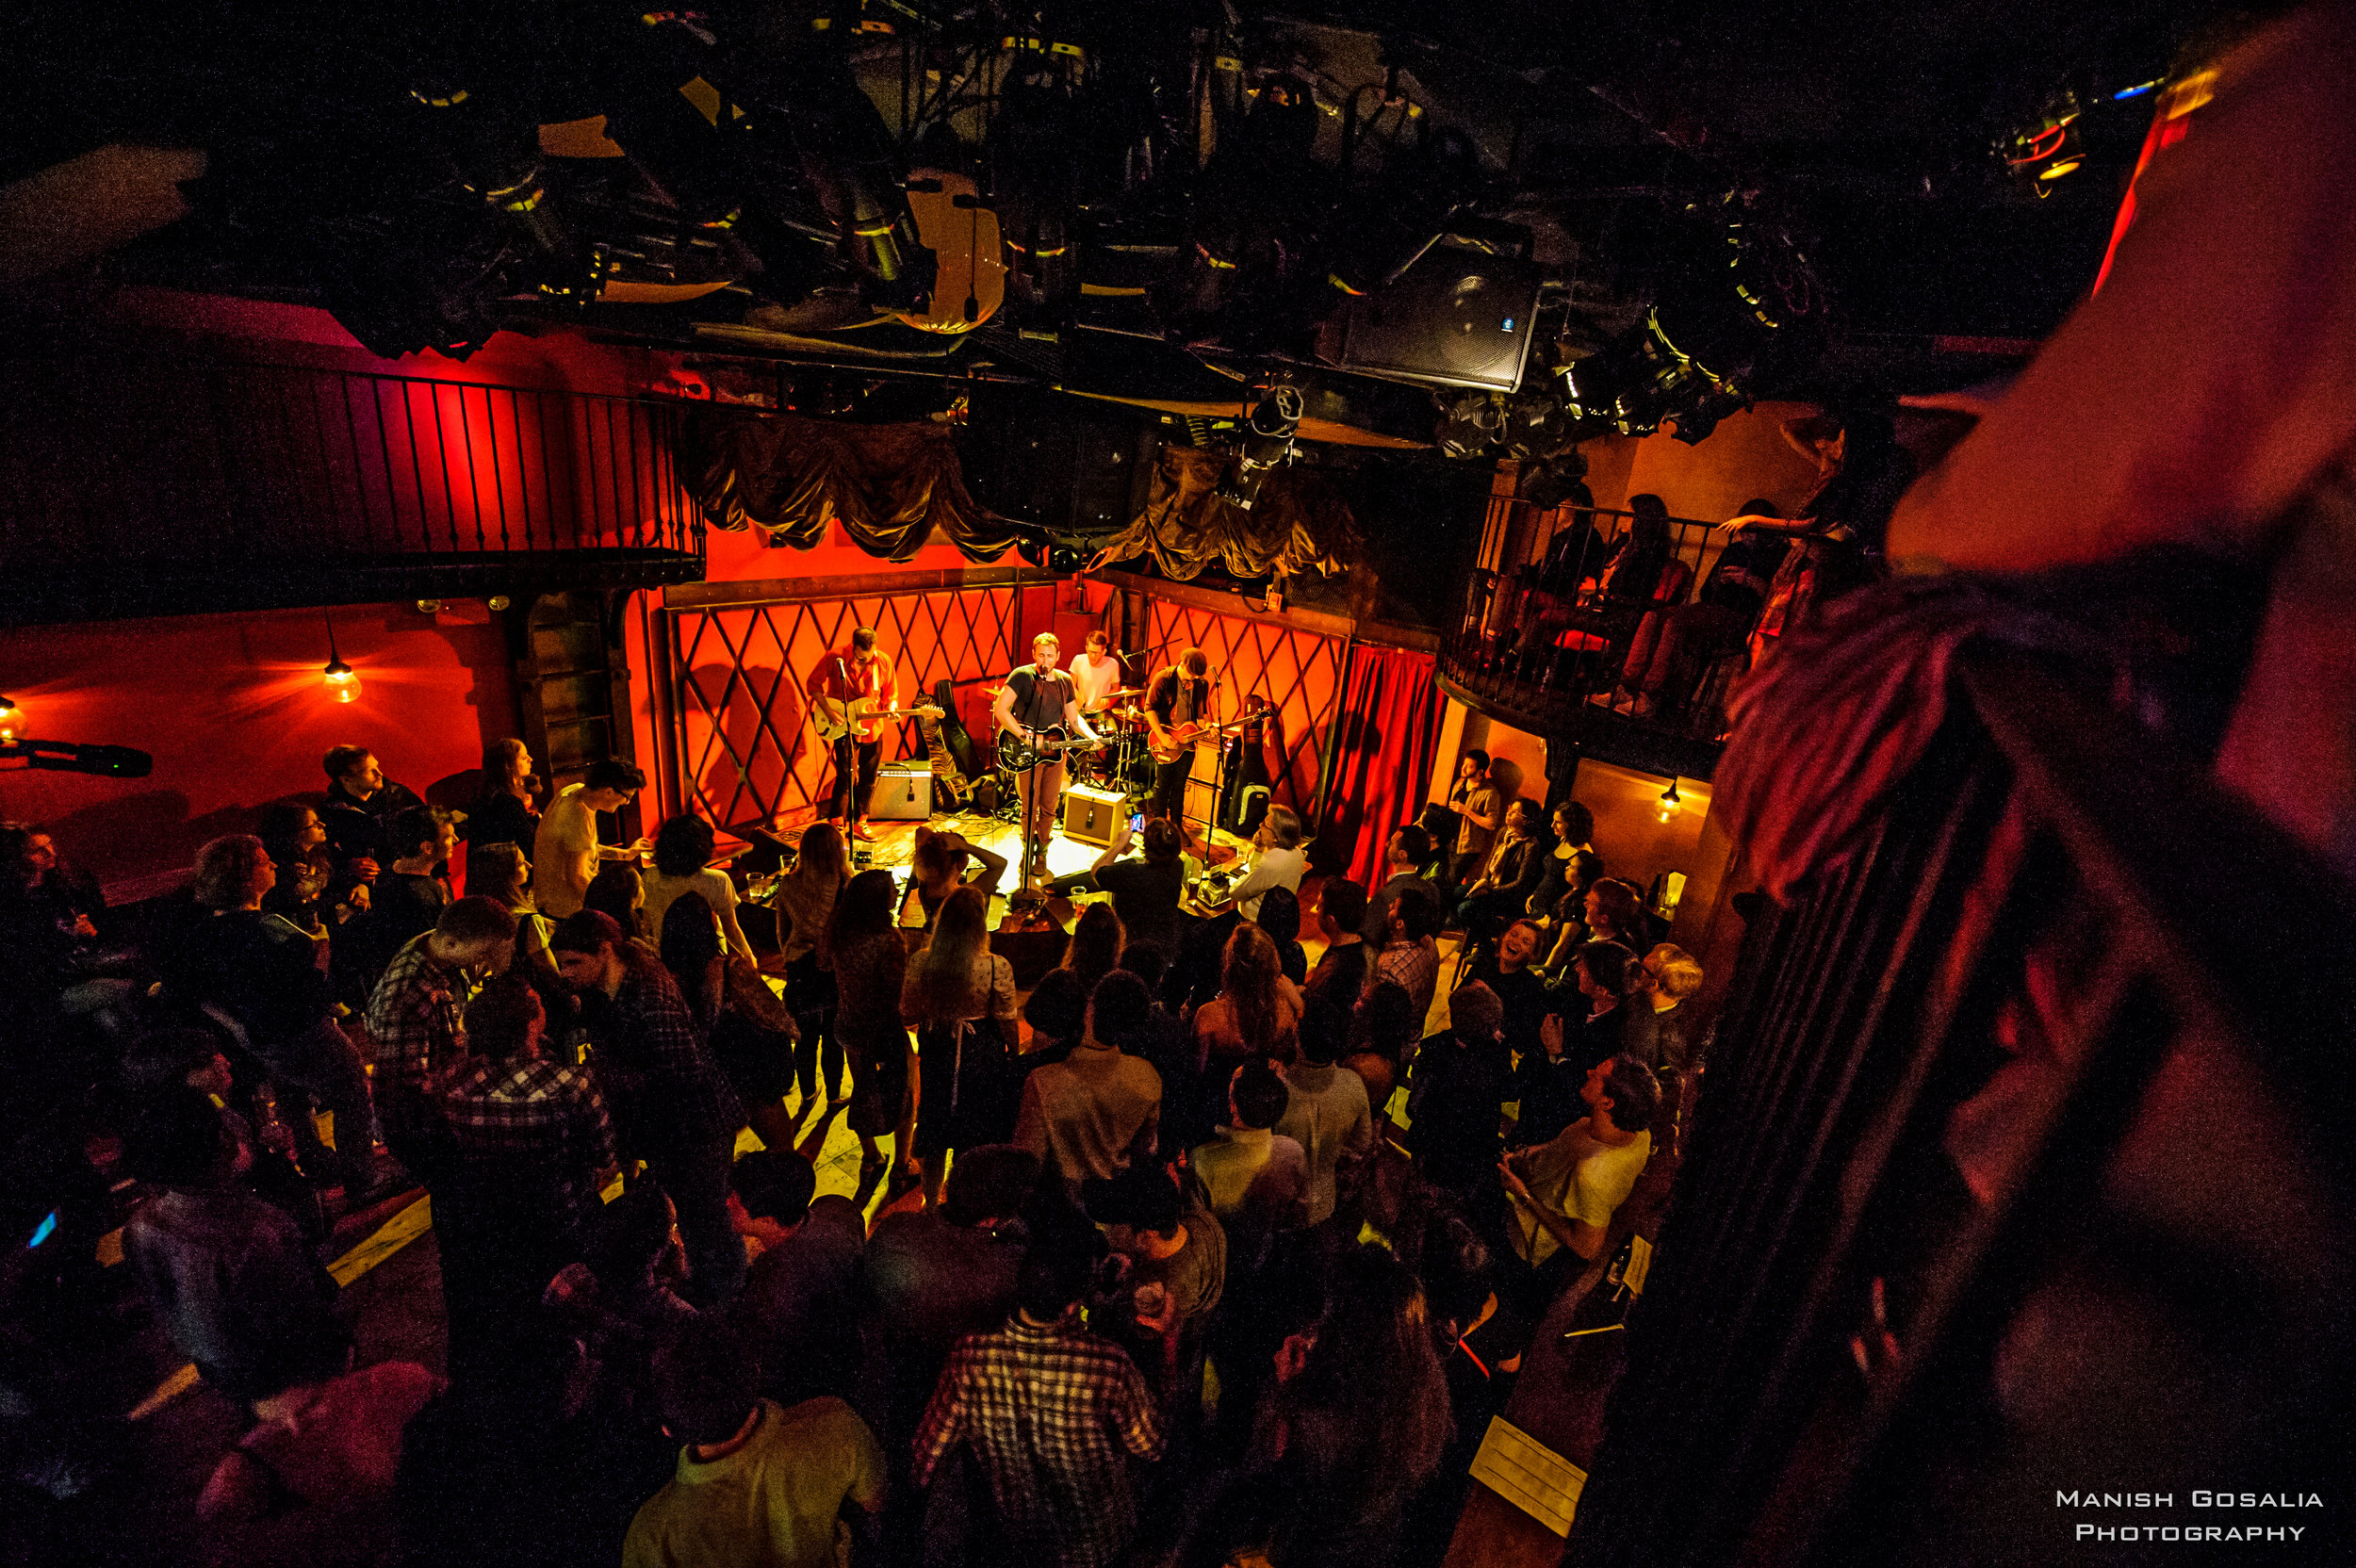 derek_james_rockwood_20140510_1144 - Manish Gosalia.jpg